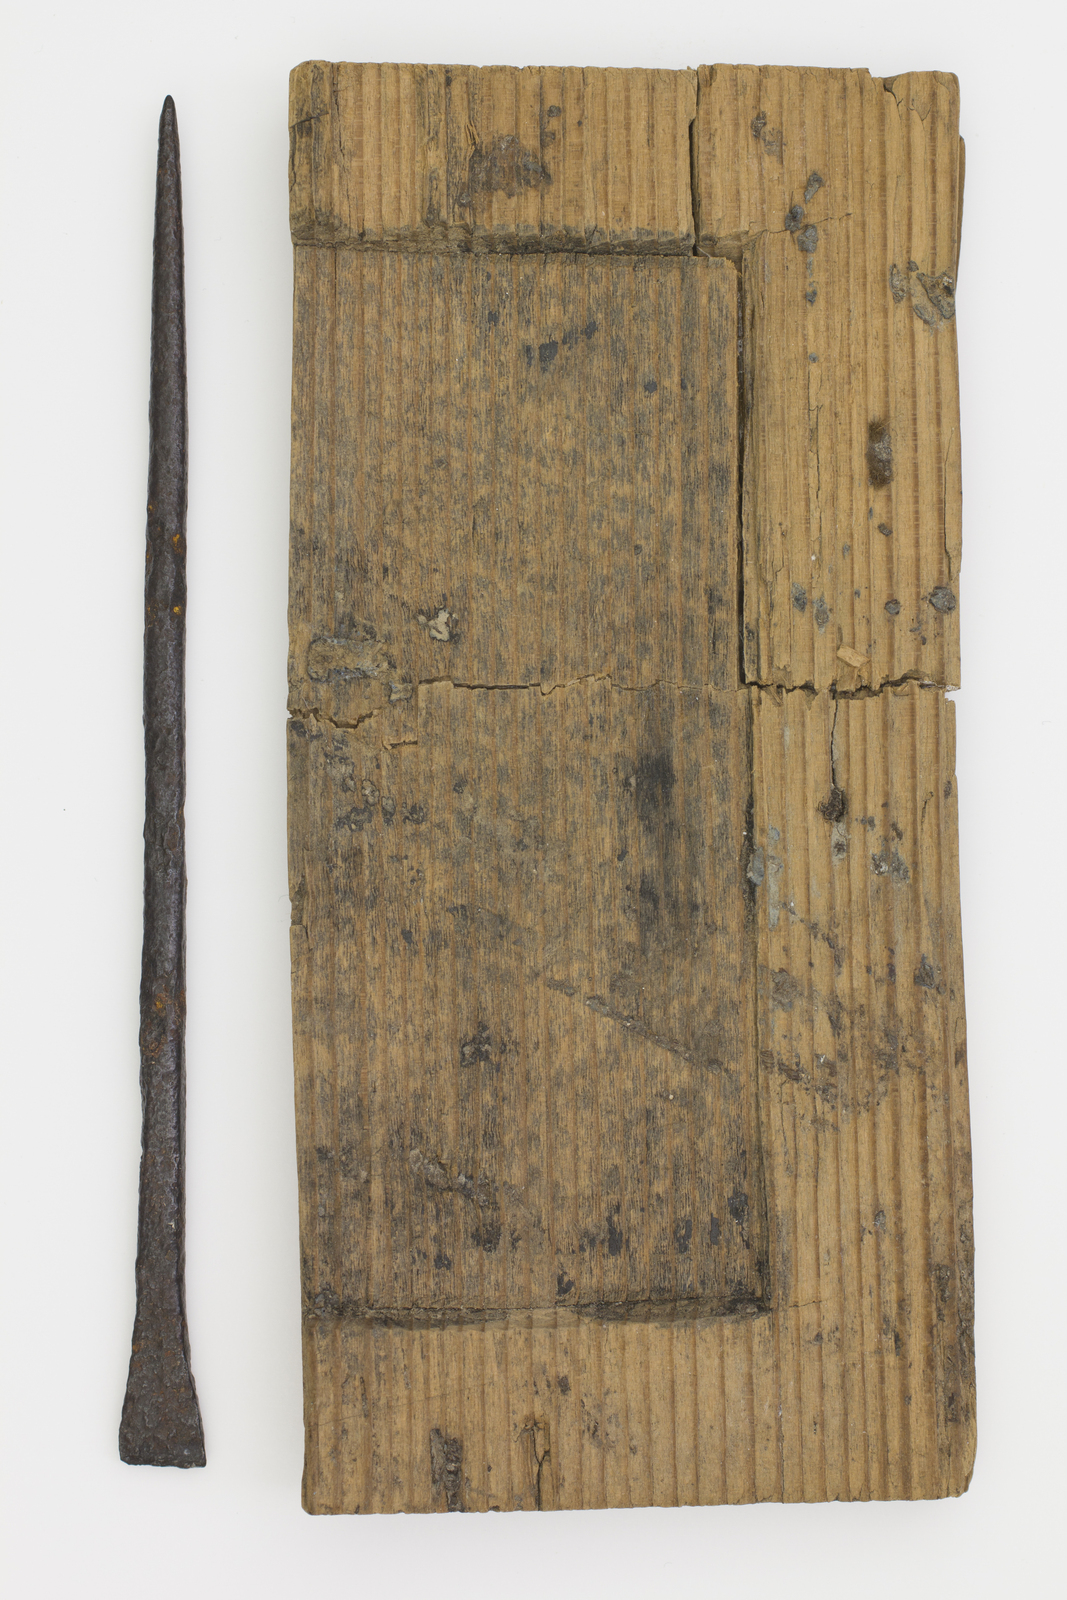 Wax tablet wooden fragment 3  with its stylus